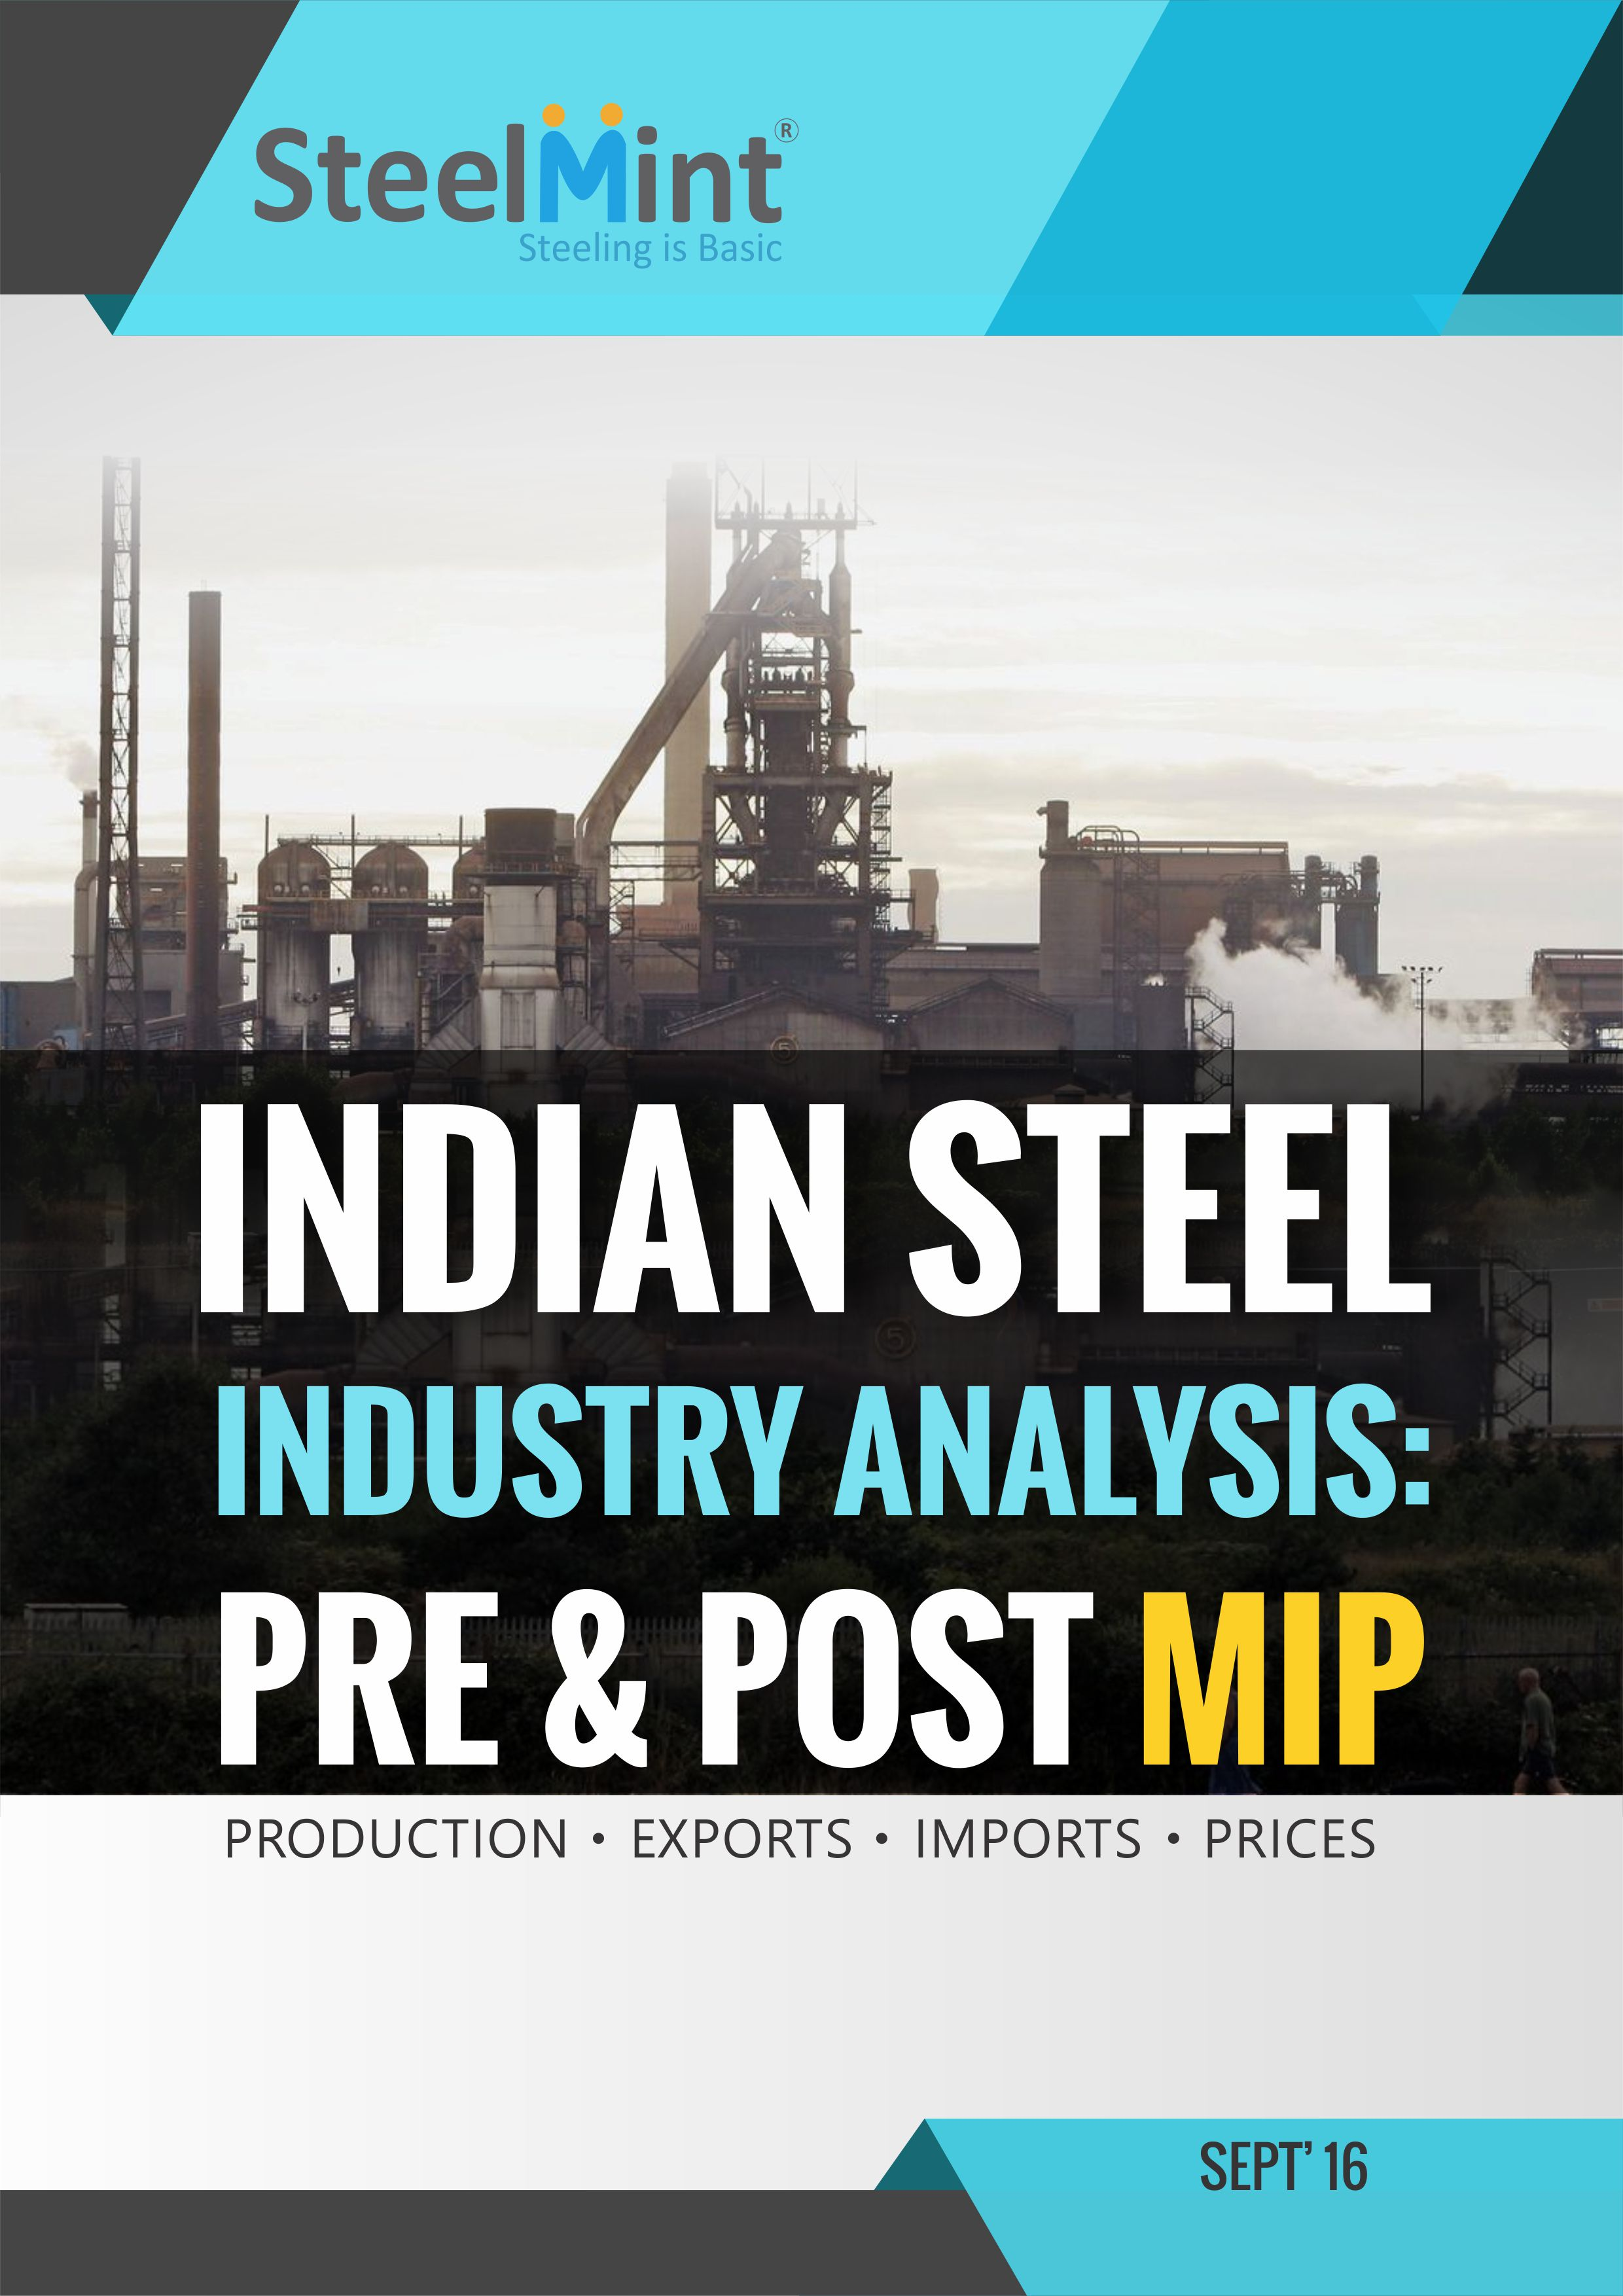 Information On Iron And Steel Industry In India | SteelMint